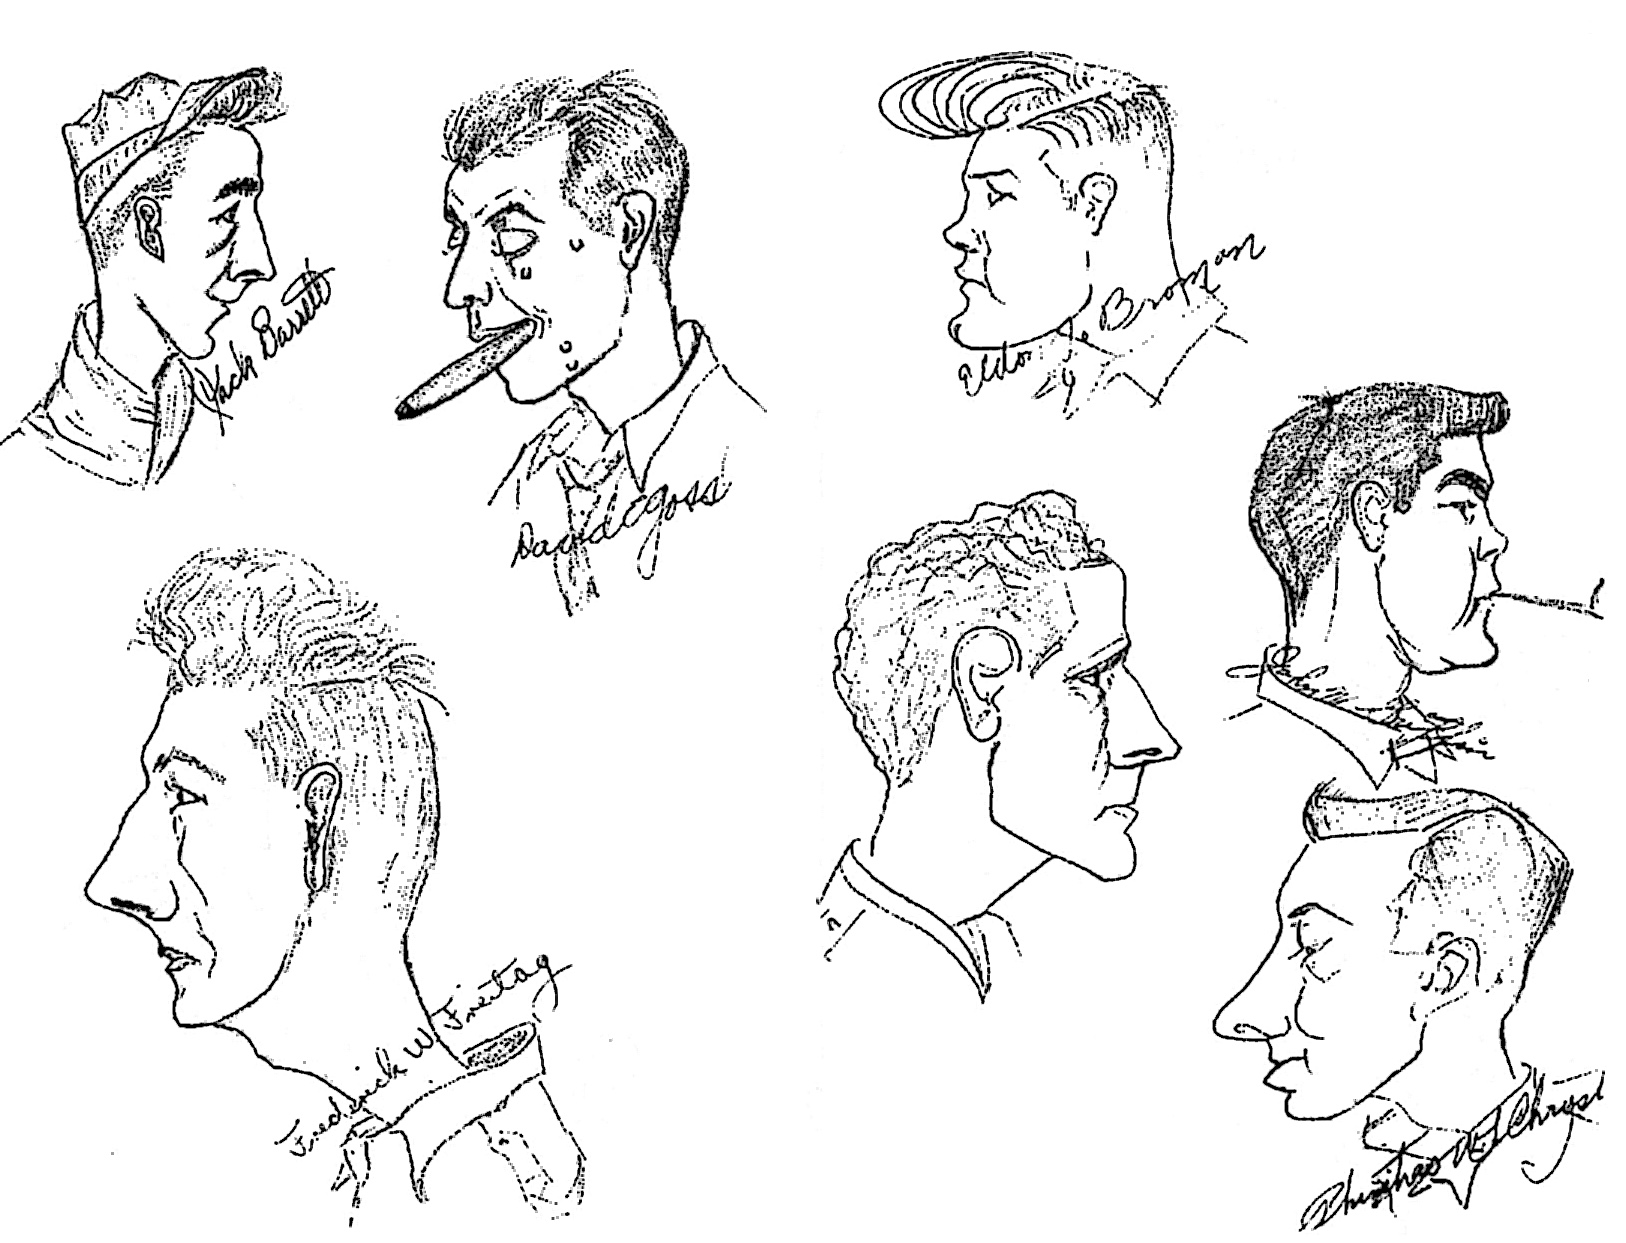 Sketches of men in room 2